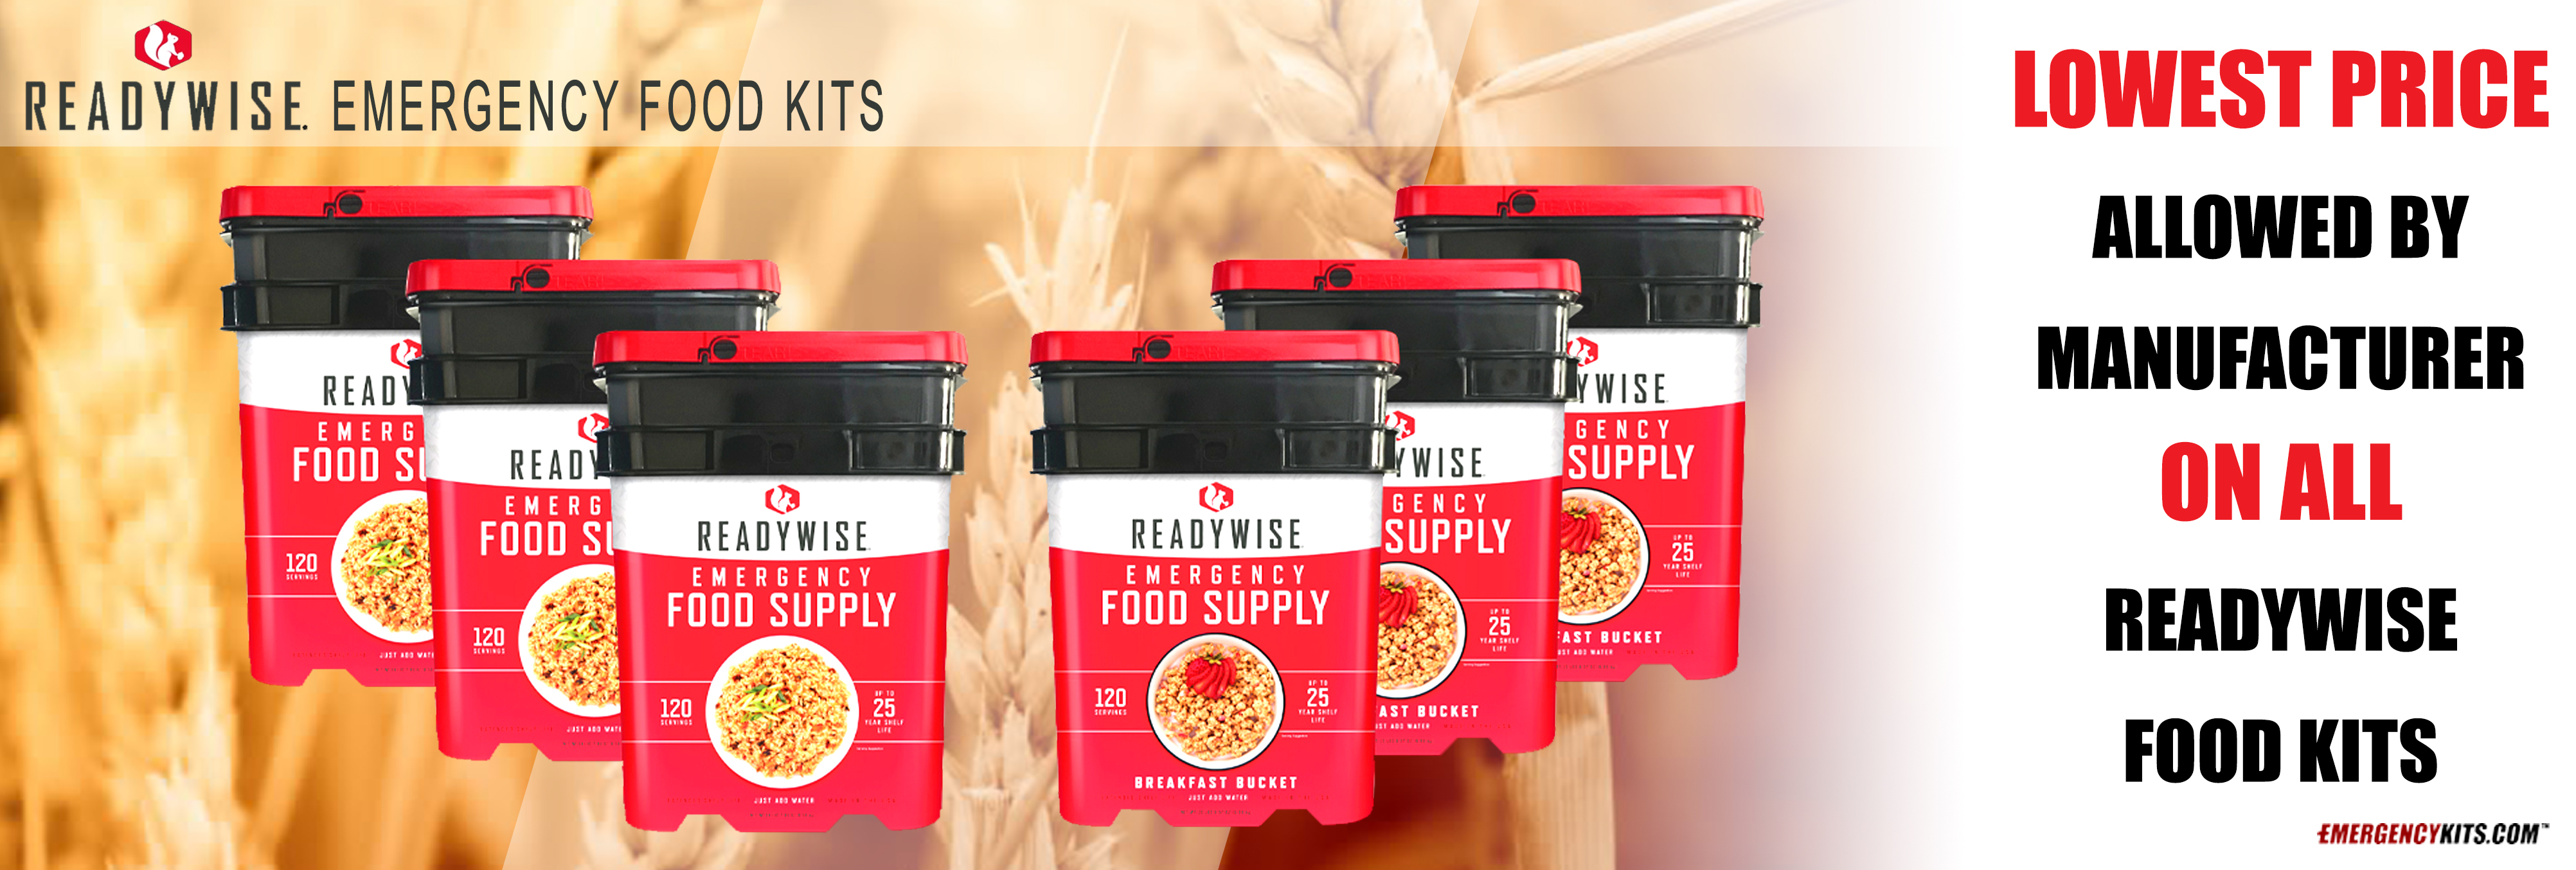 lowest Price Allowed My Manufacturer on all ReadyWise Food Kits.